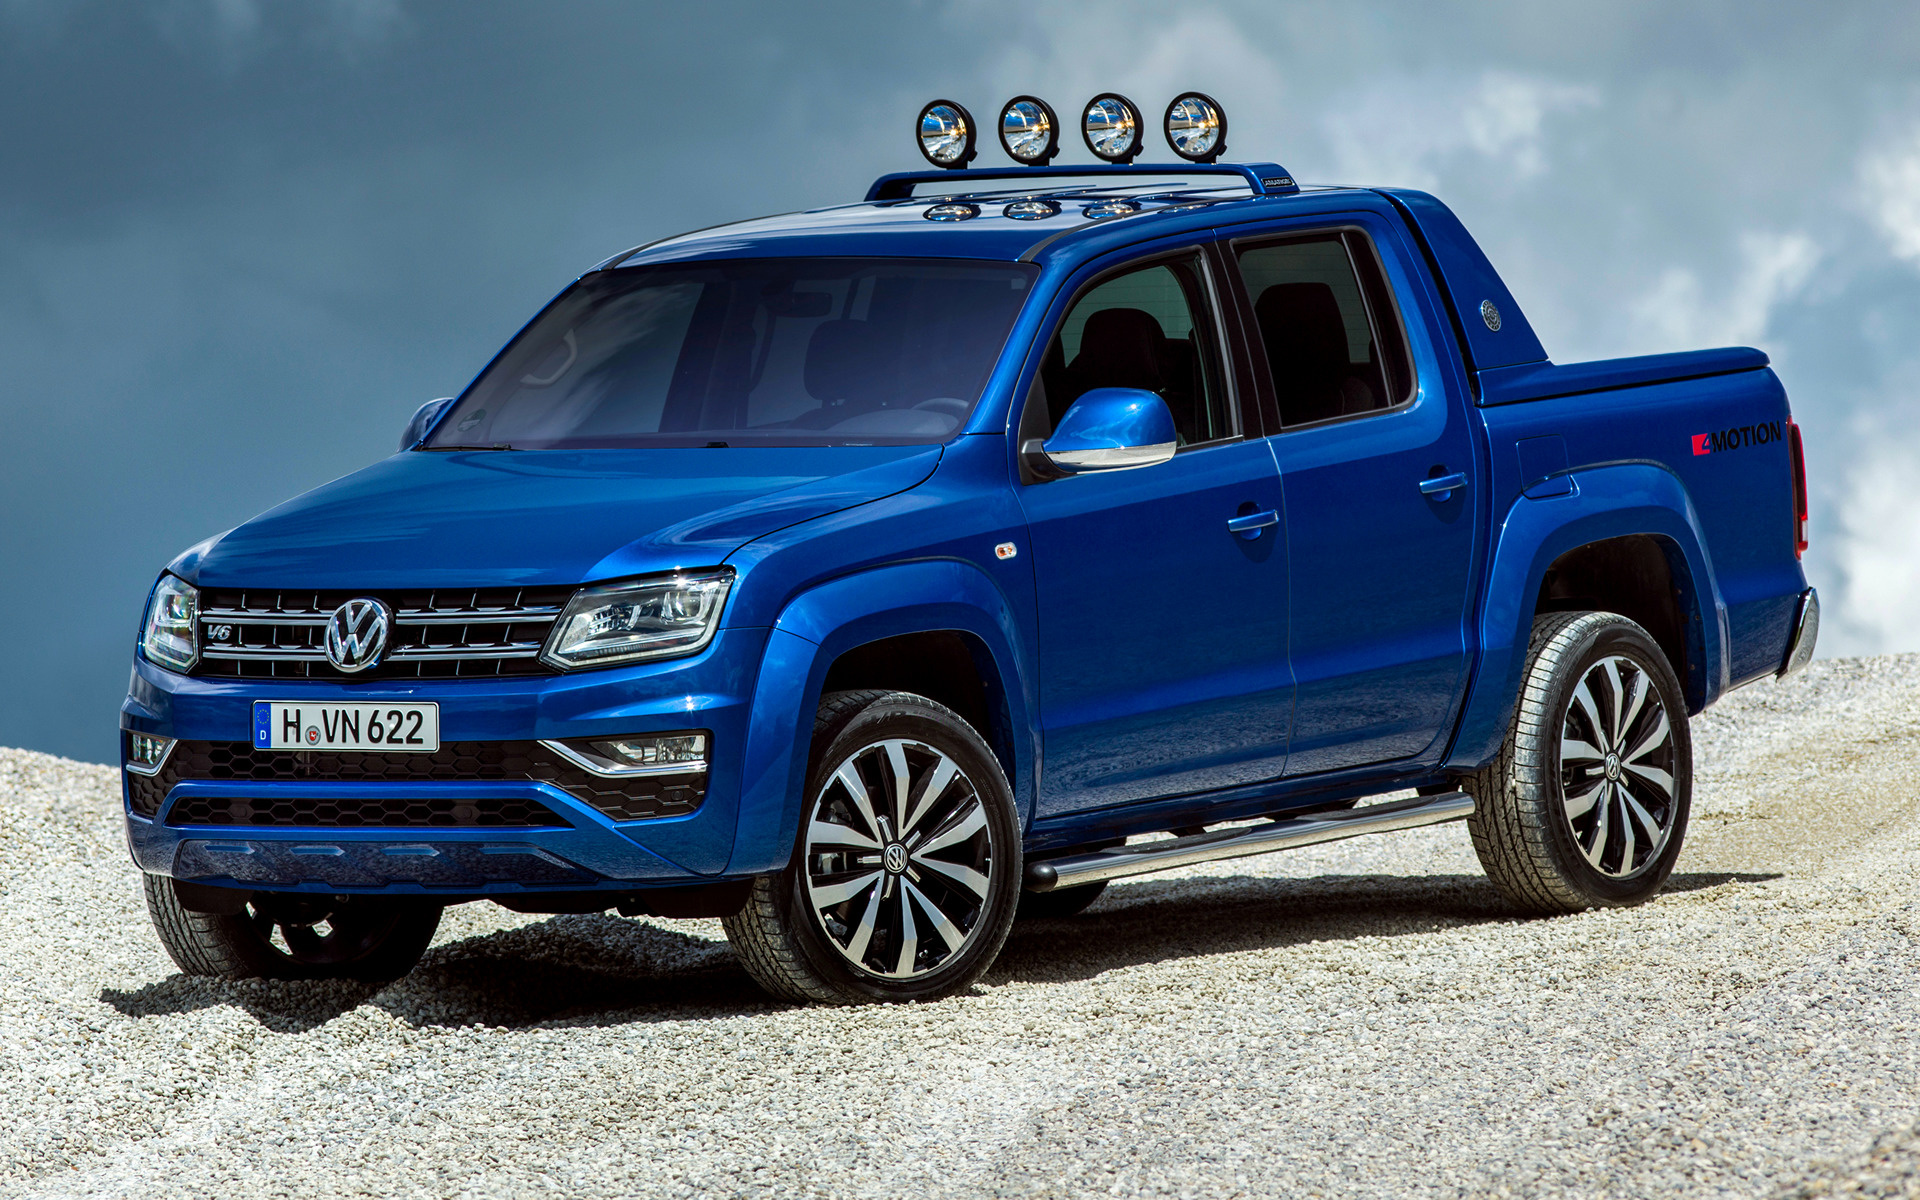 Volkswagen Amarok Aventura Double Cab (2016) Wallpapers and HD Images - Car Pixel